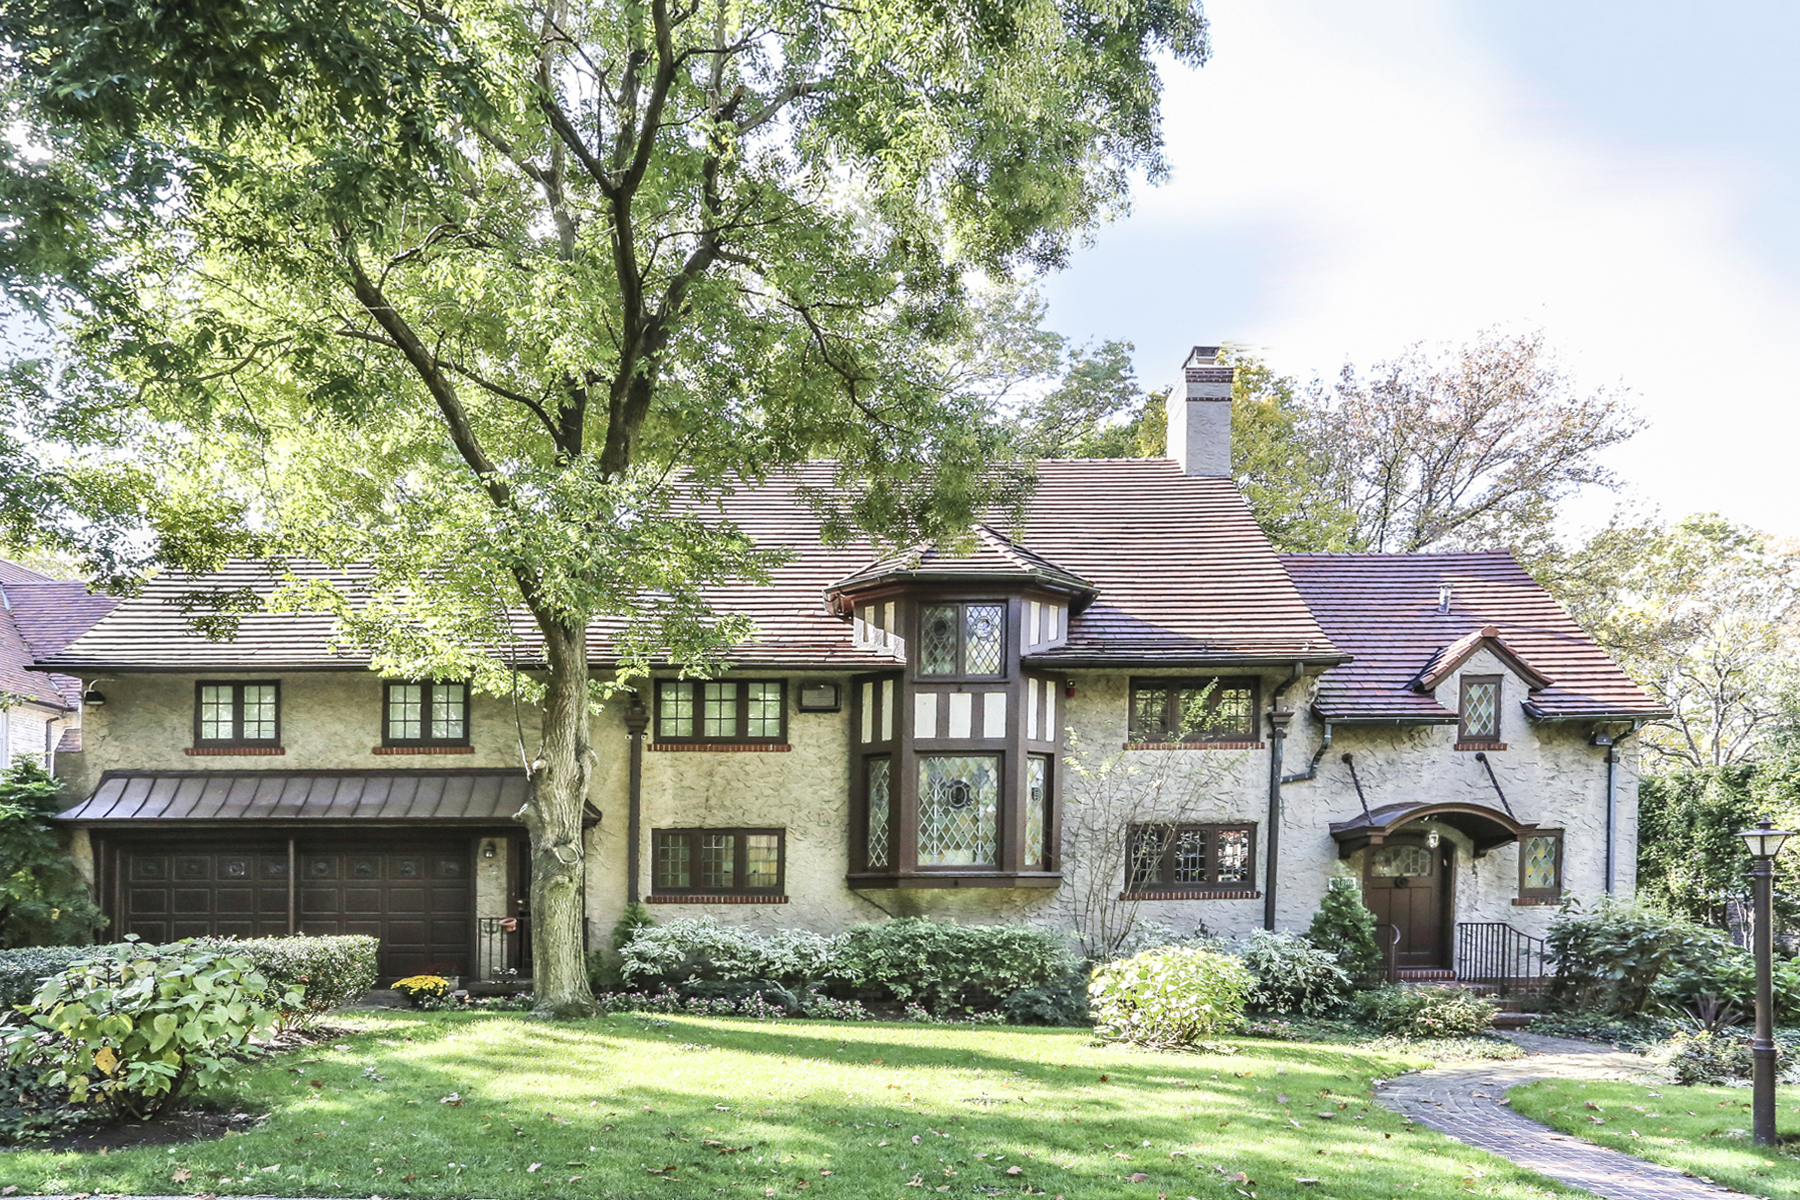 """Single Family Homes for Sale at """"ARCHITECTURALLY MAGNIFICENT TUDOR RESIDENCE"""" 229 Greenway South, Forest Hills Gardens, Queens, New York 11375 United States"""